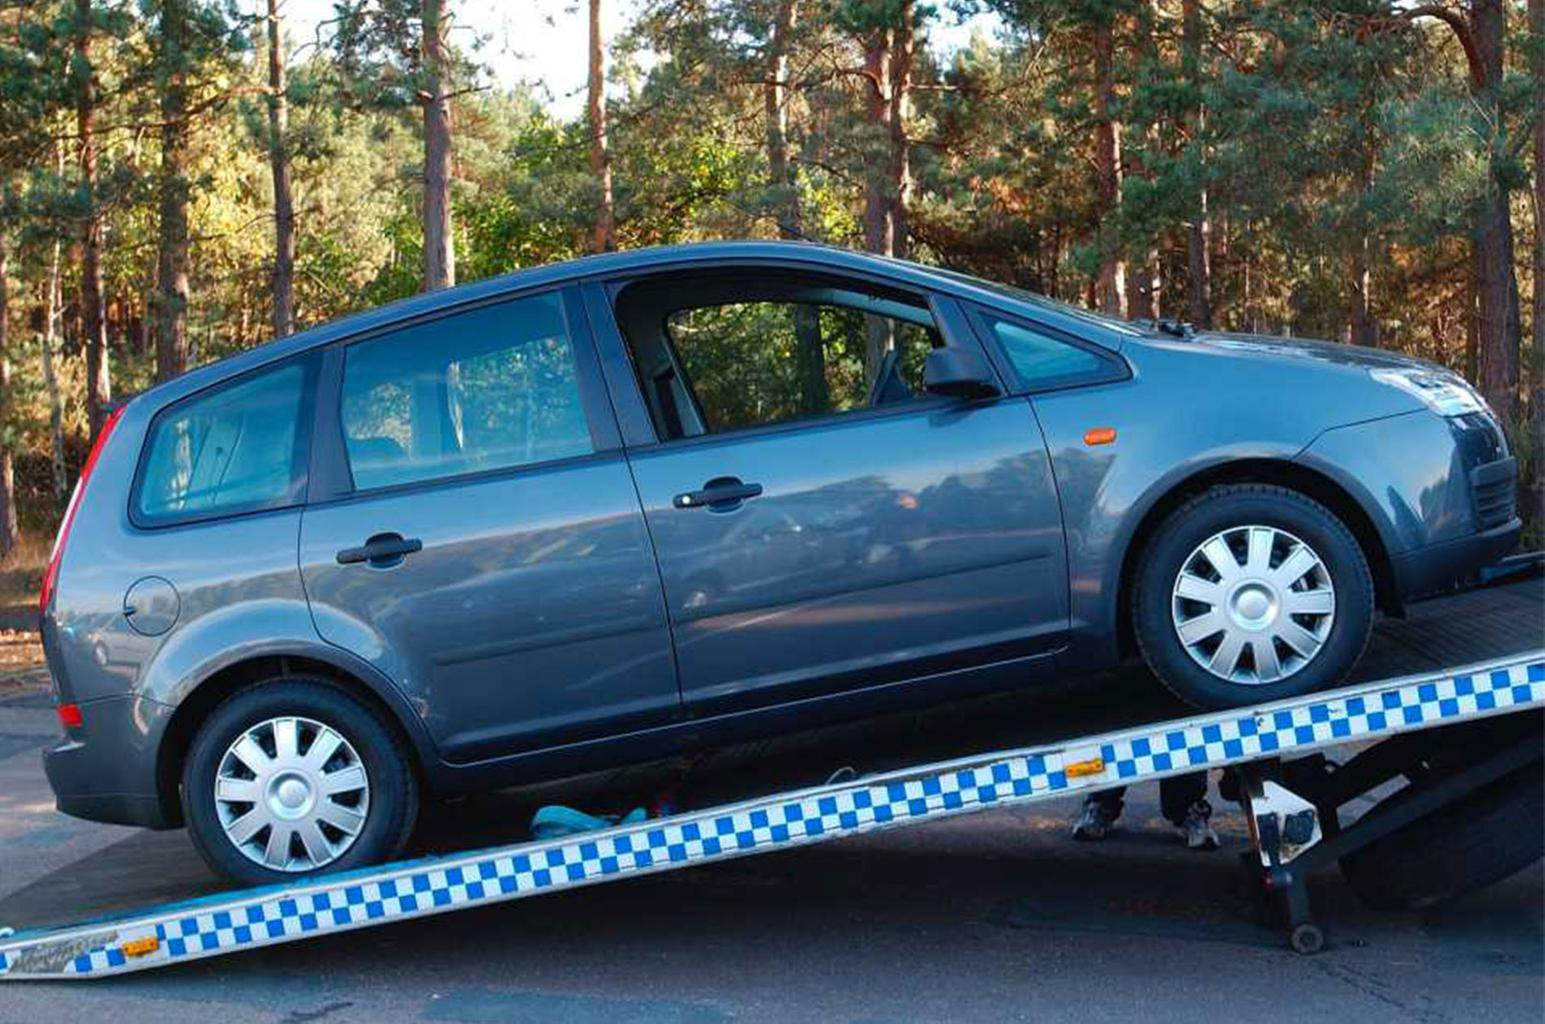 Your legal rights if something goes wrong with your car